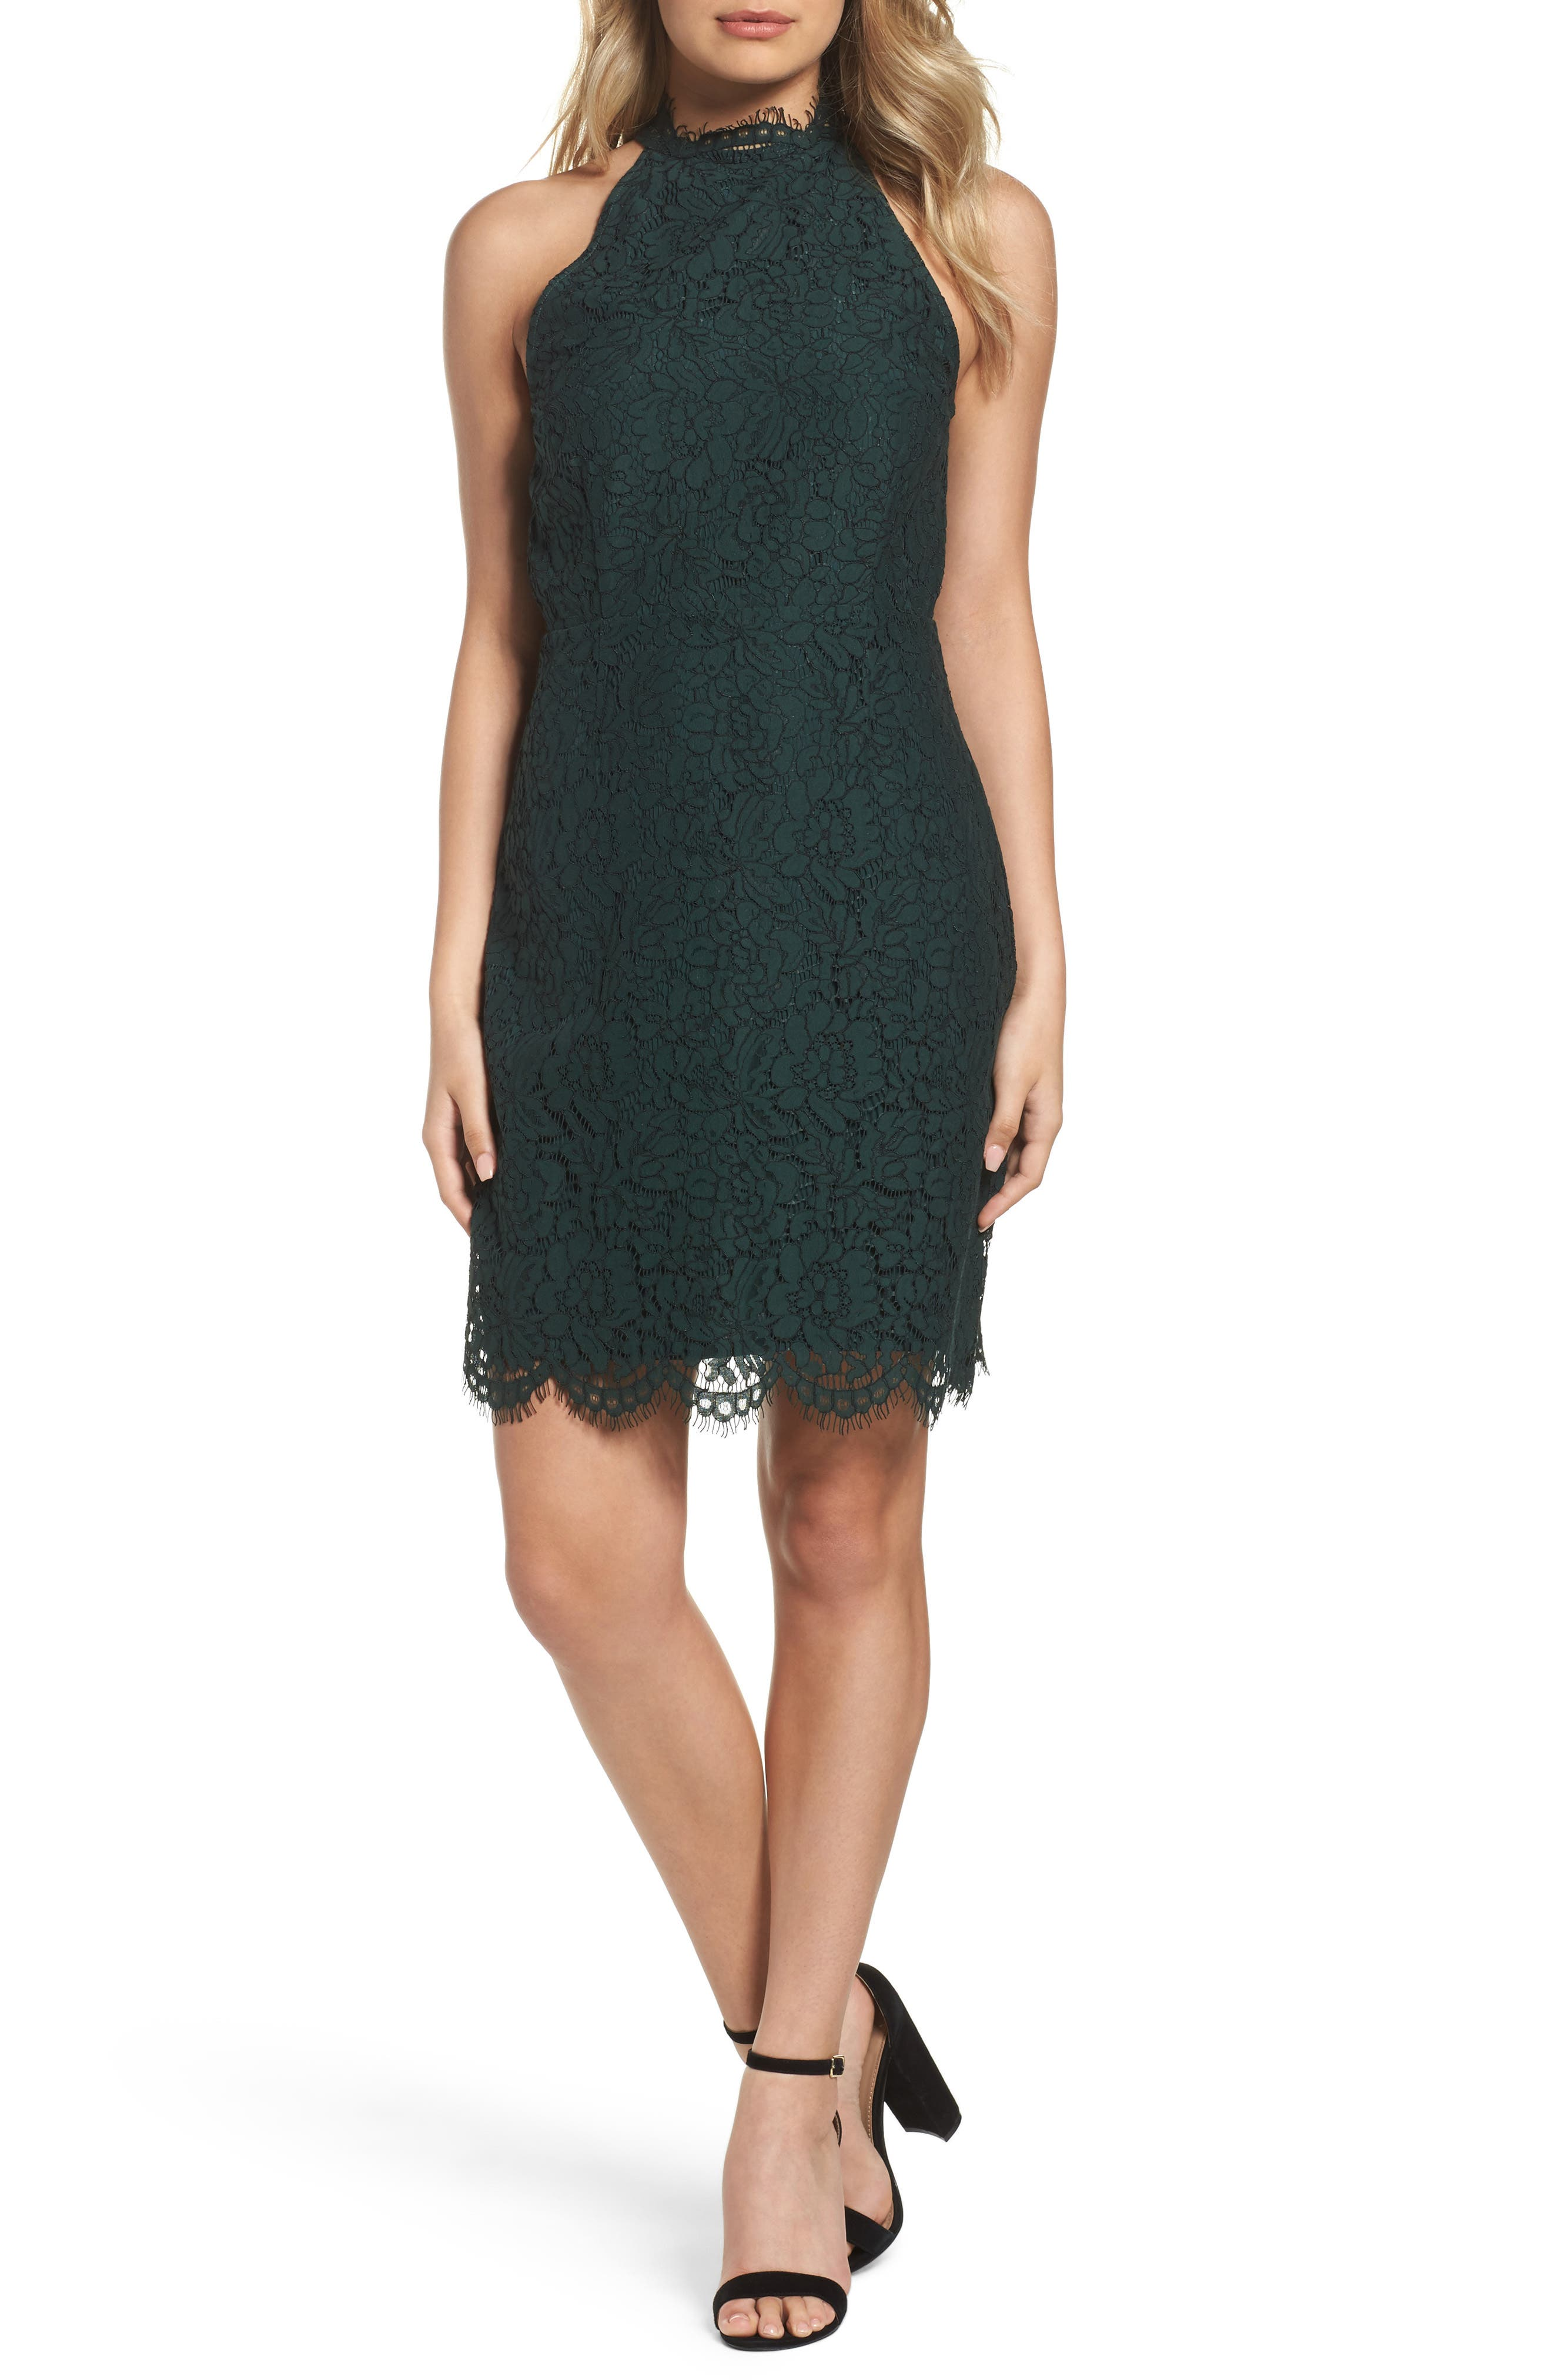 'Cara' High Neck Lace Dress,                             Main thumbnail 1, color,                             Forest Green